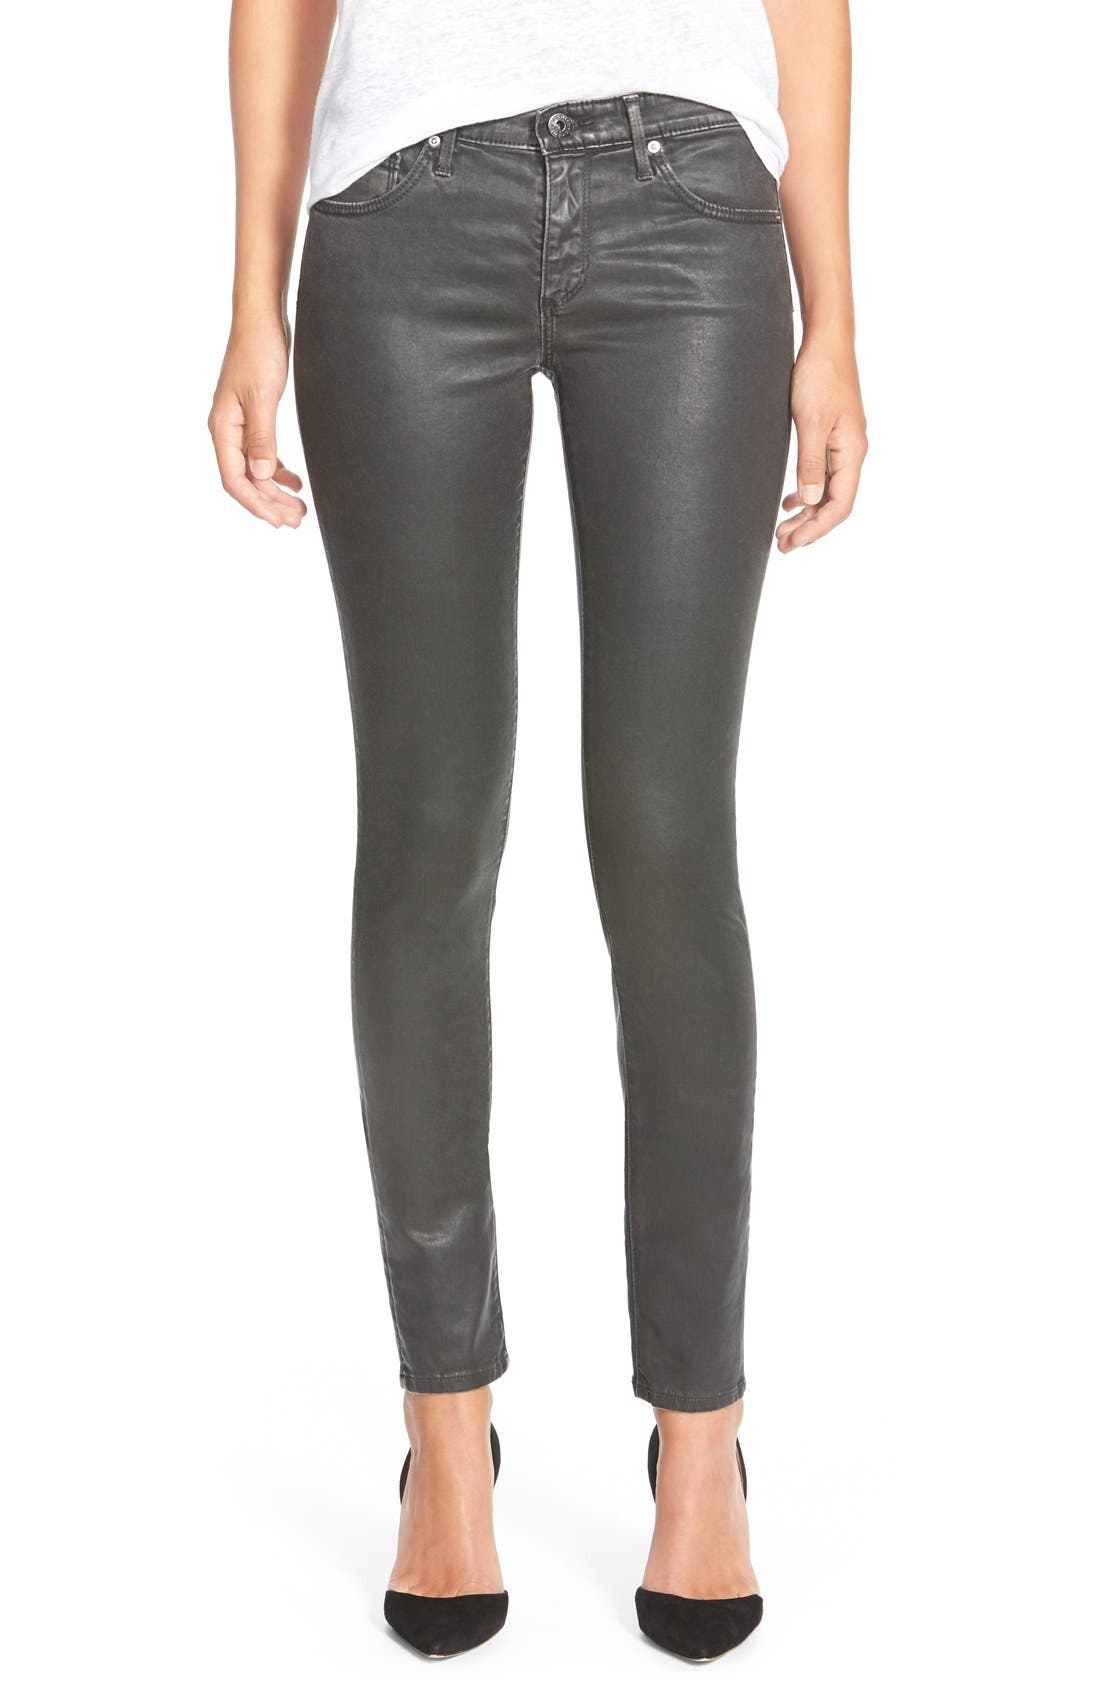 'The Legging' Coated Ankle Jeans,                         Main,                         color, Vintage Leatherette Black